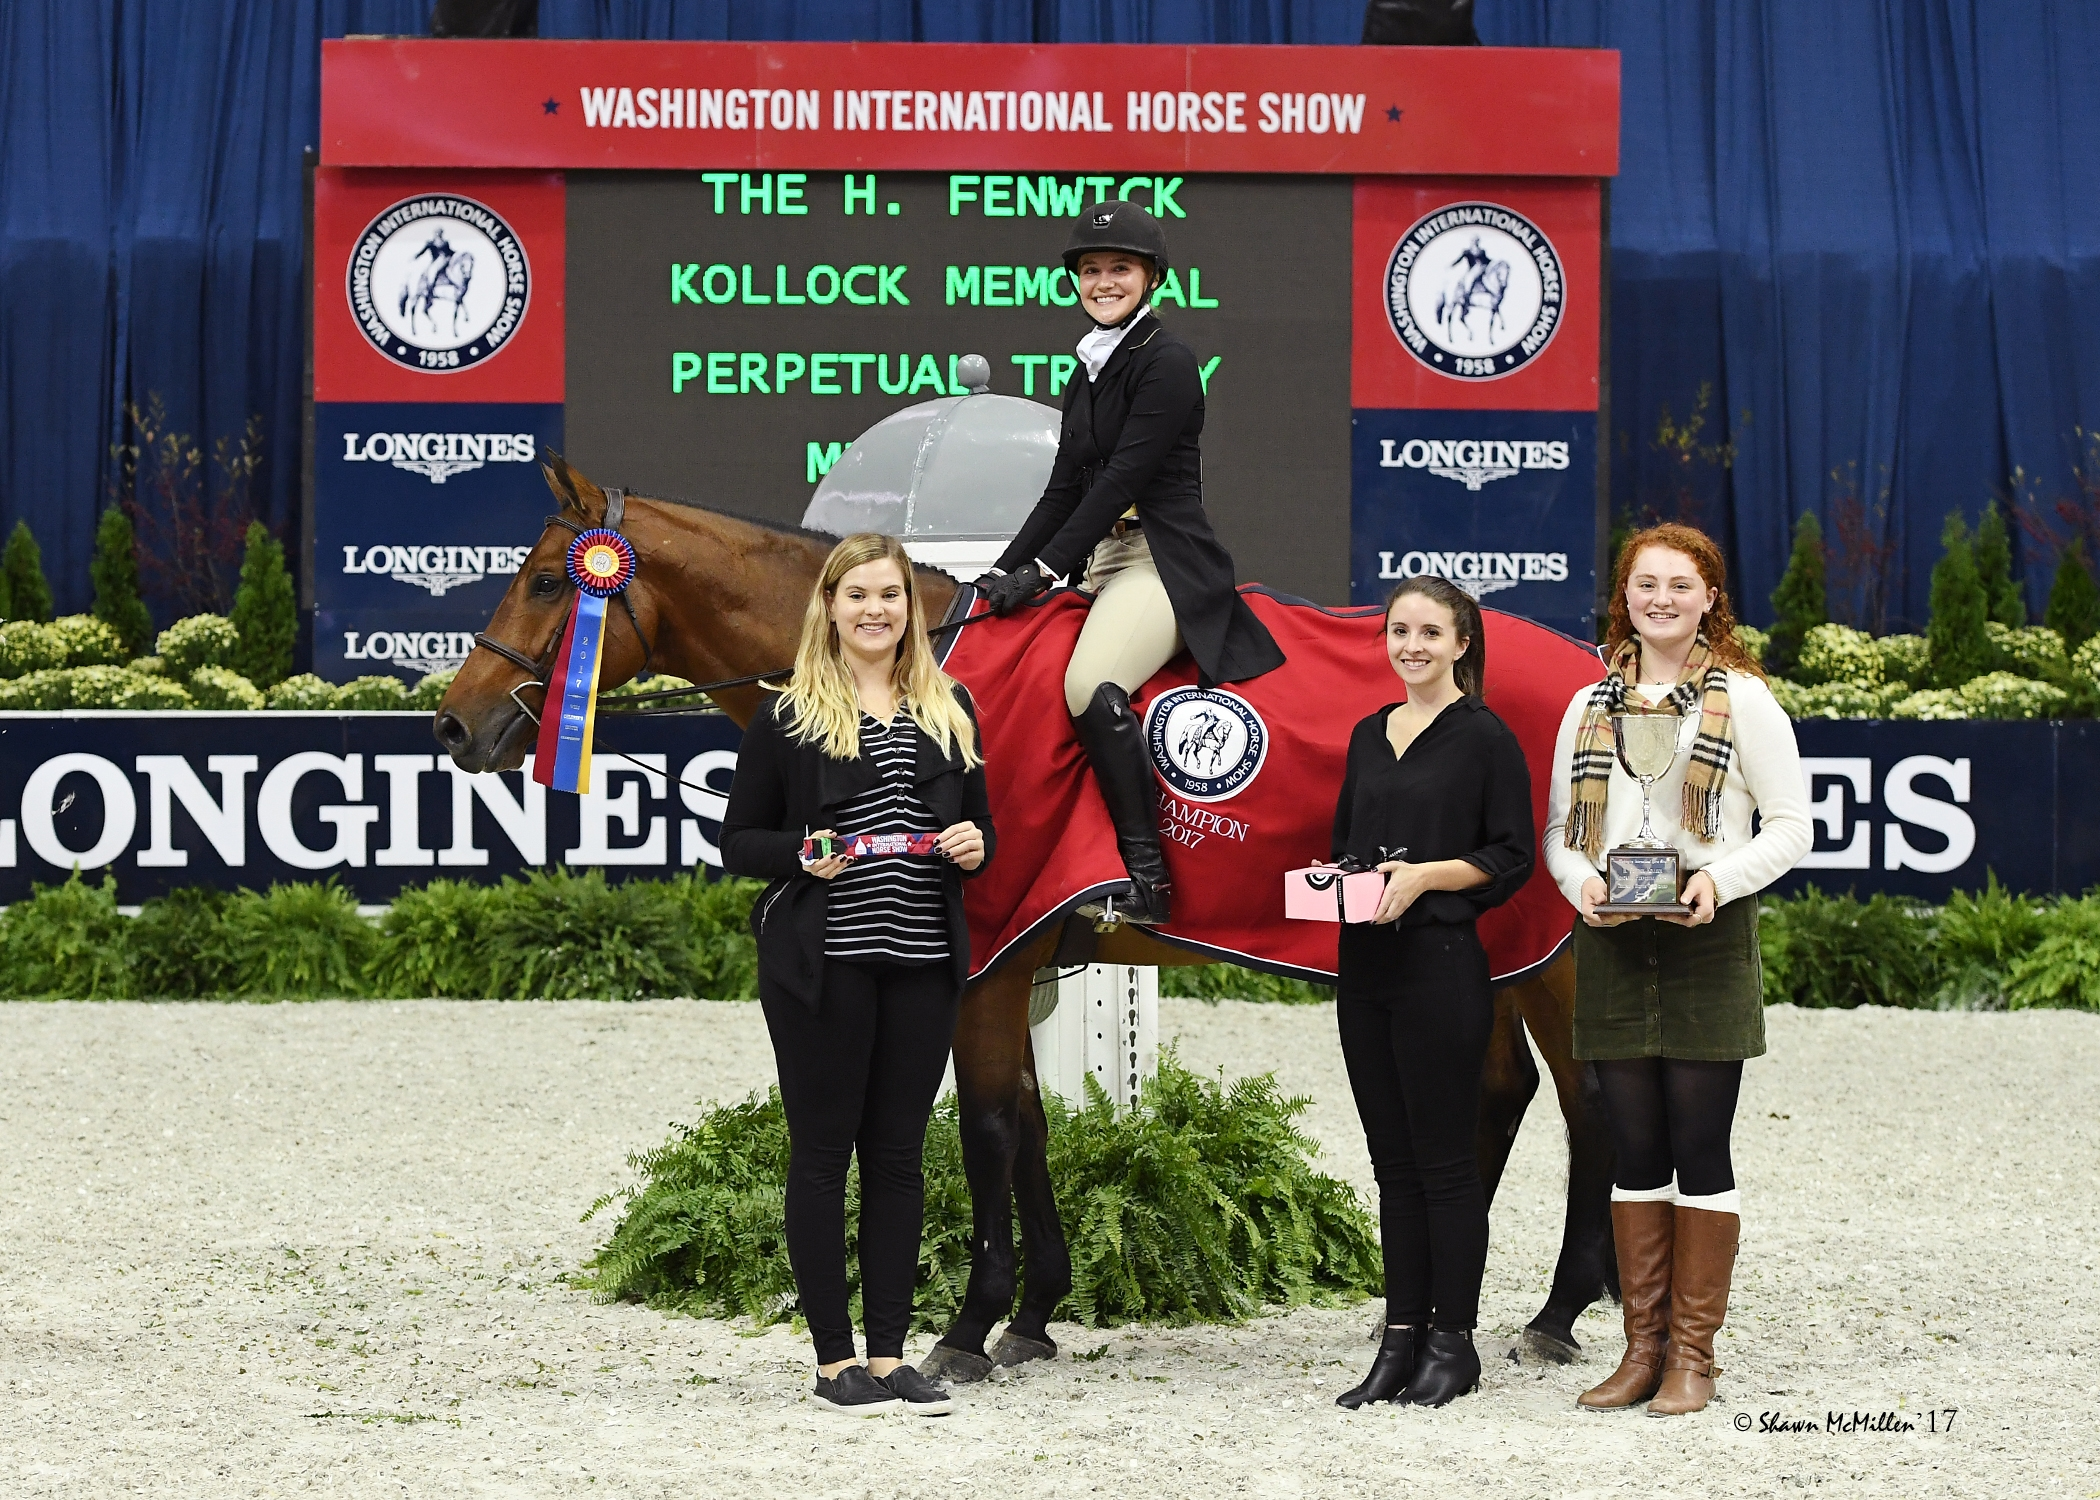 Anna Kubiak rode Memorable to the win in the $10,000 WIHS Children's Hunter Championship. <br><b>Photo by <a href='http://www.shawnmcmillen.com/'target='_blank'>Shawn McMillen Photography</a></b>